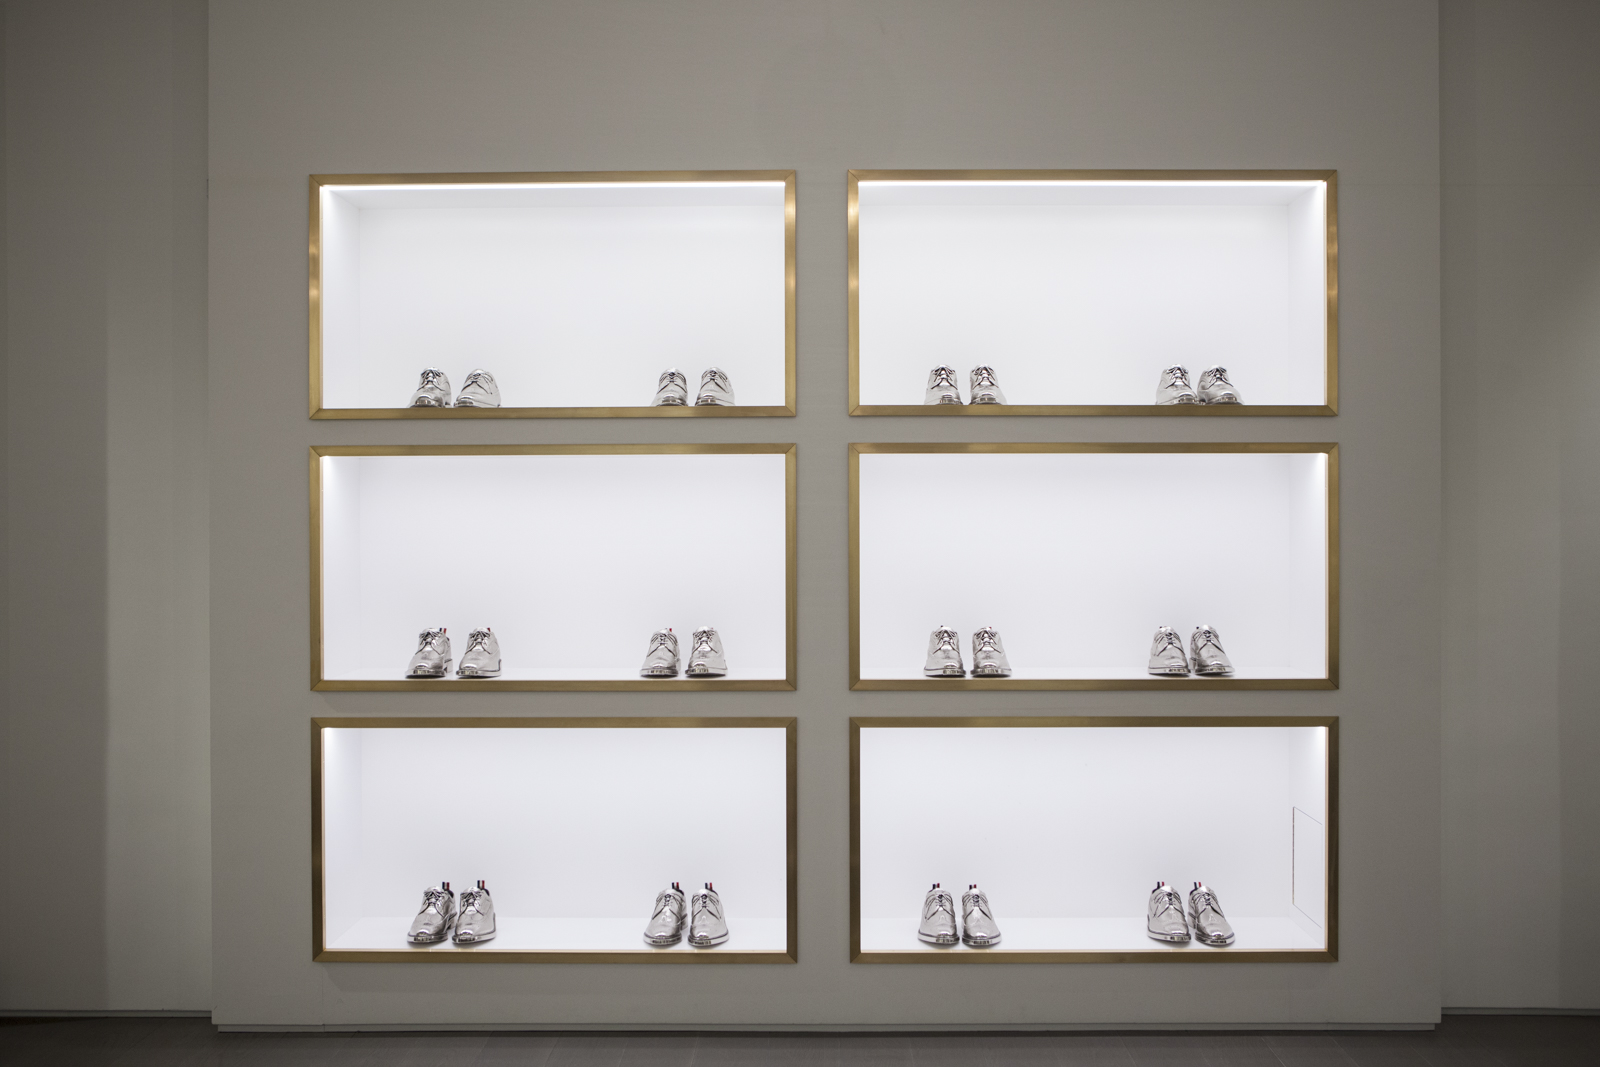 Silver shoe display